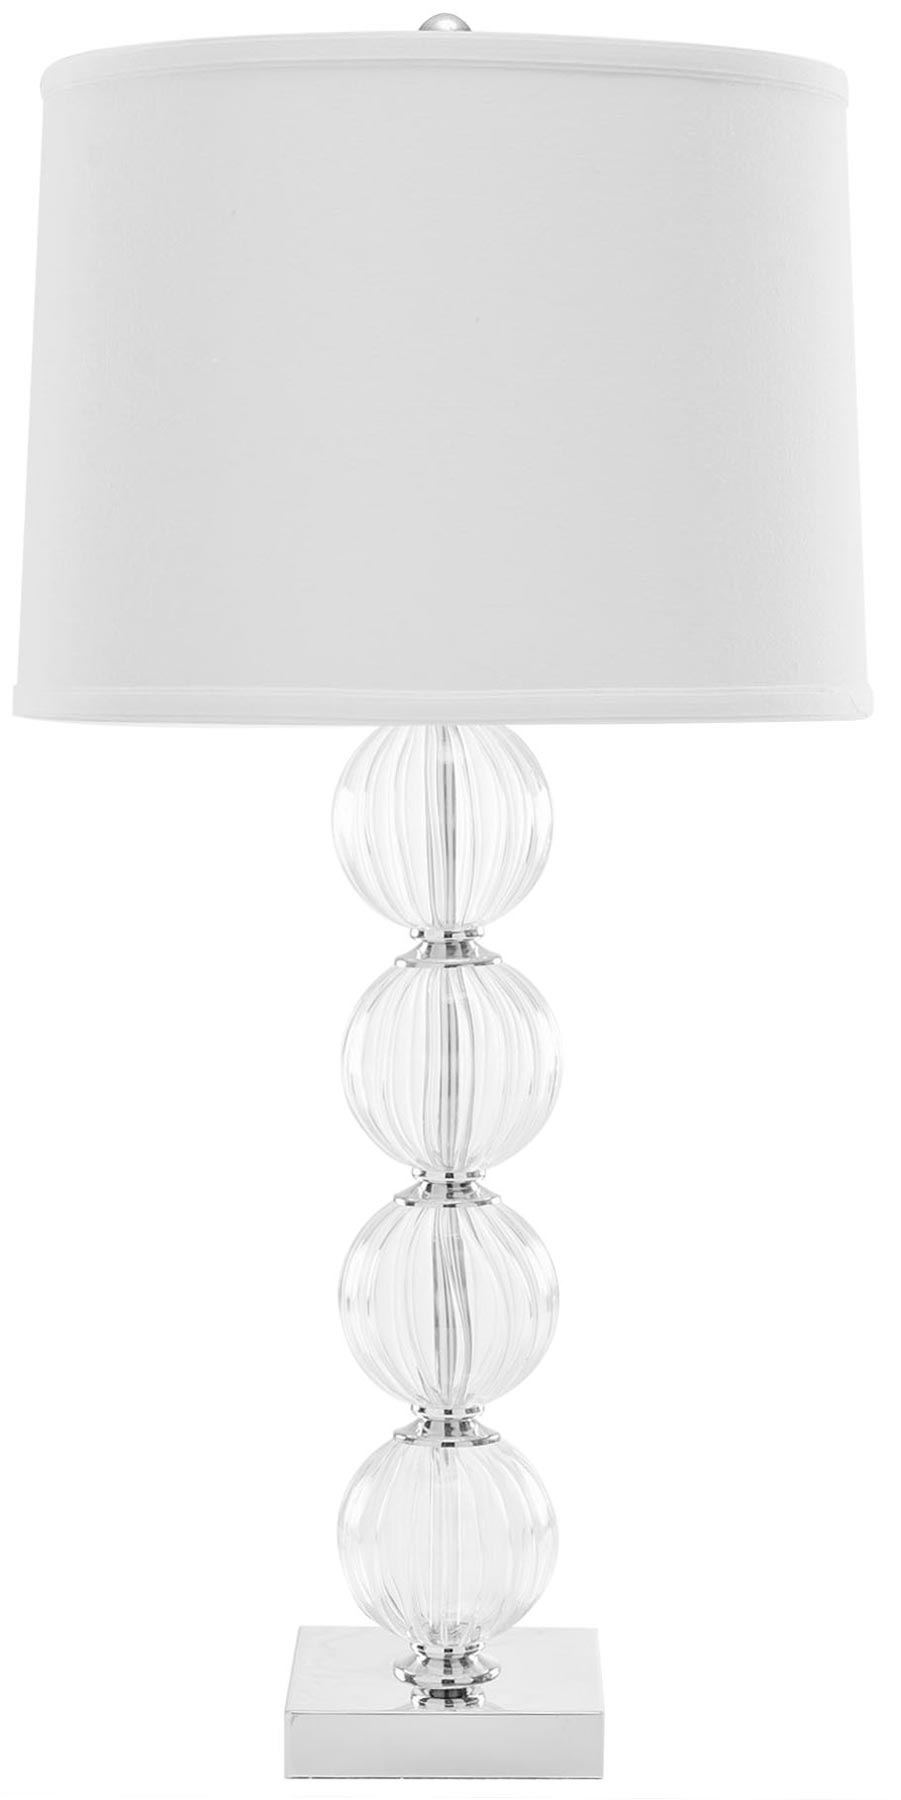 Lit4006c set2 table lamps lighting by safavieh updating an art deco classic the amanda lamp balances a stack of four fluted crystal balls atop a polished mirror finish metal base geotapseo Choice Image